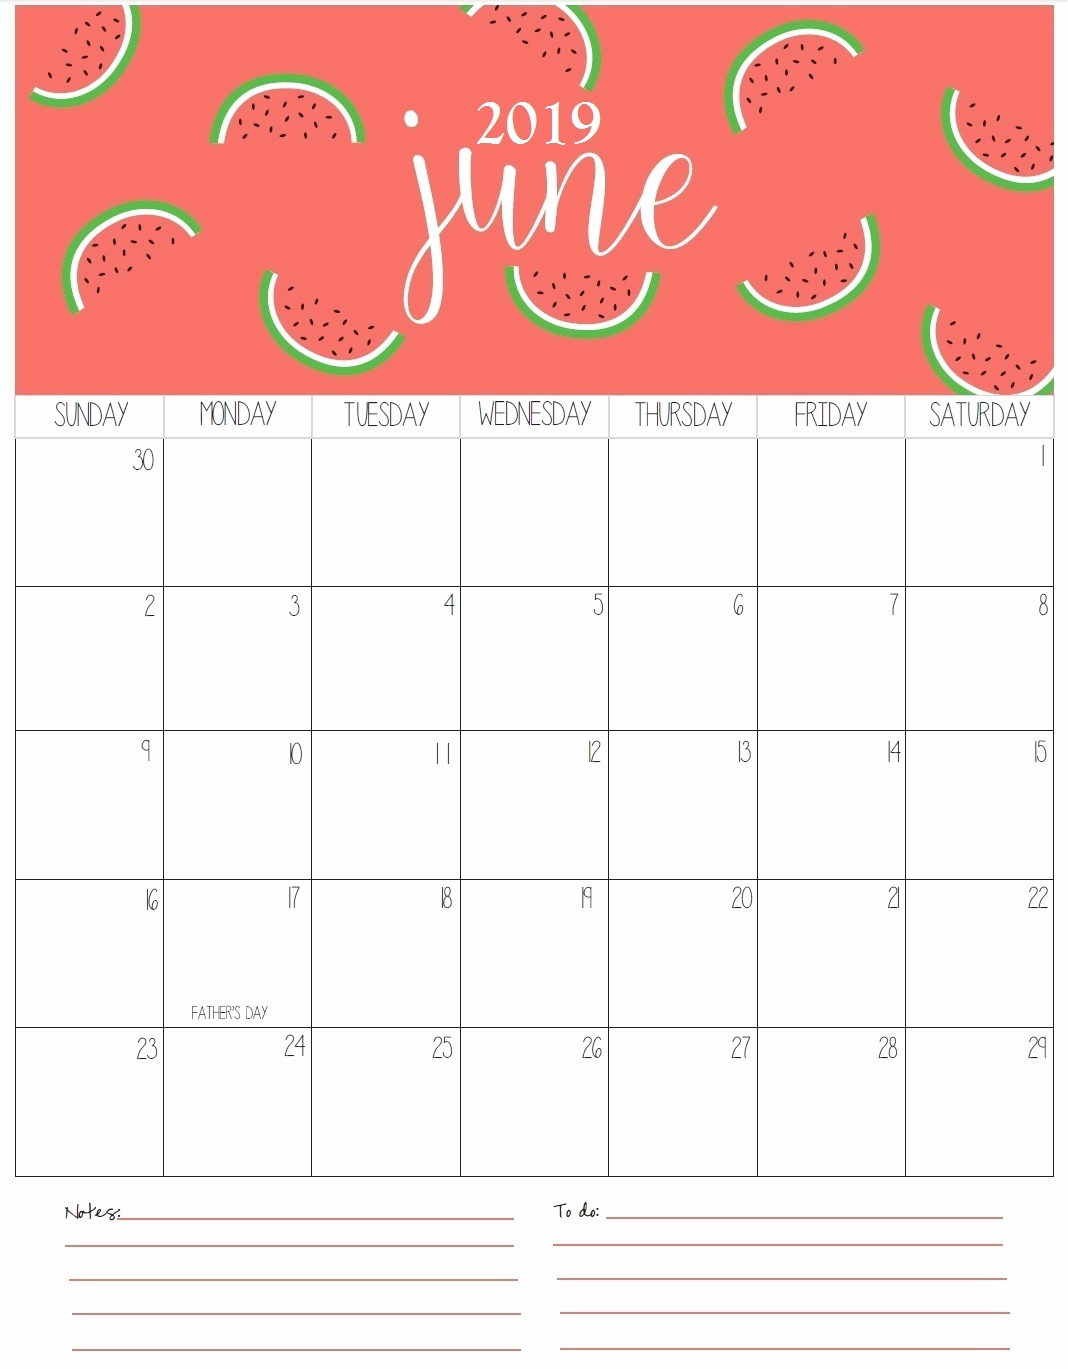 calendar june 2019 printable make a calendar::June 2019 Calendar